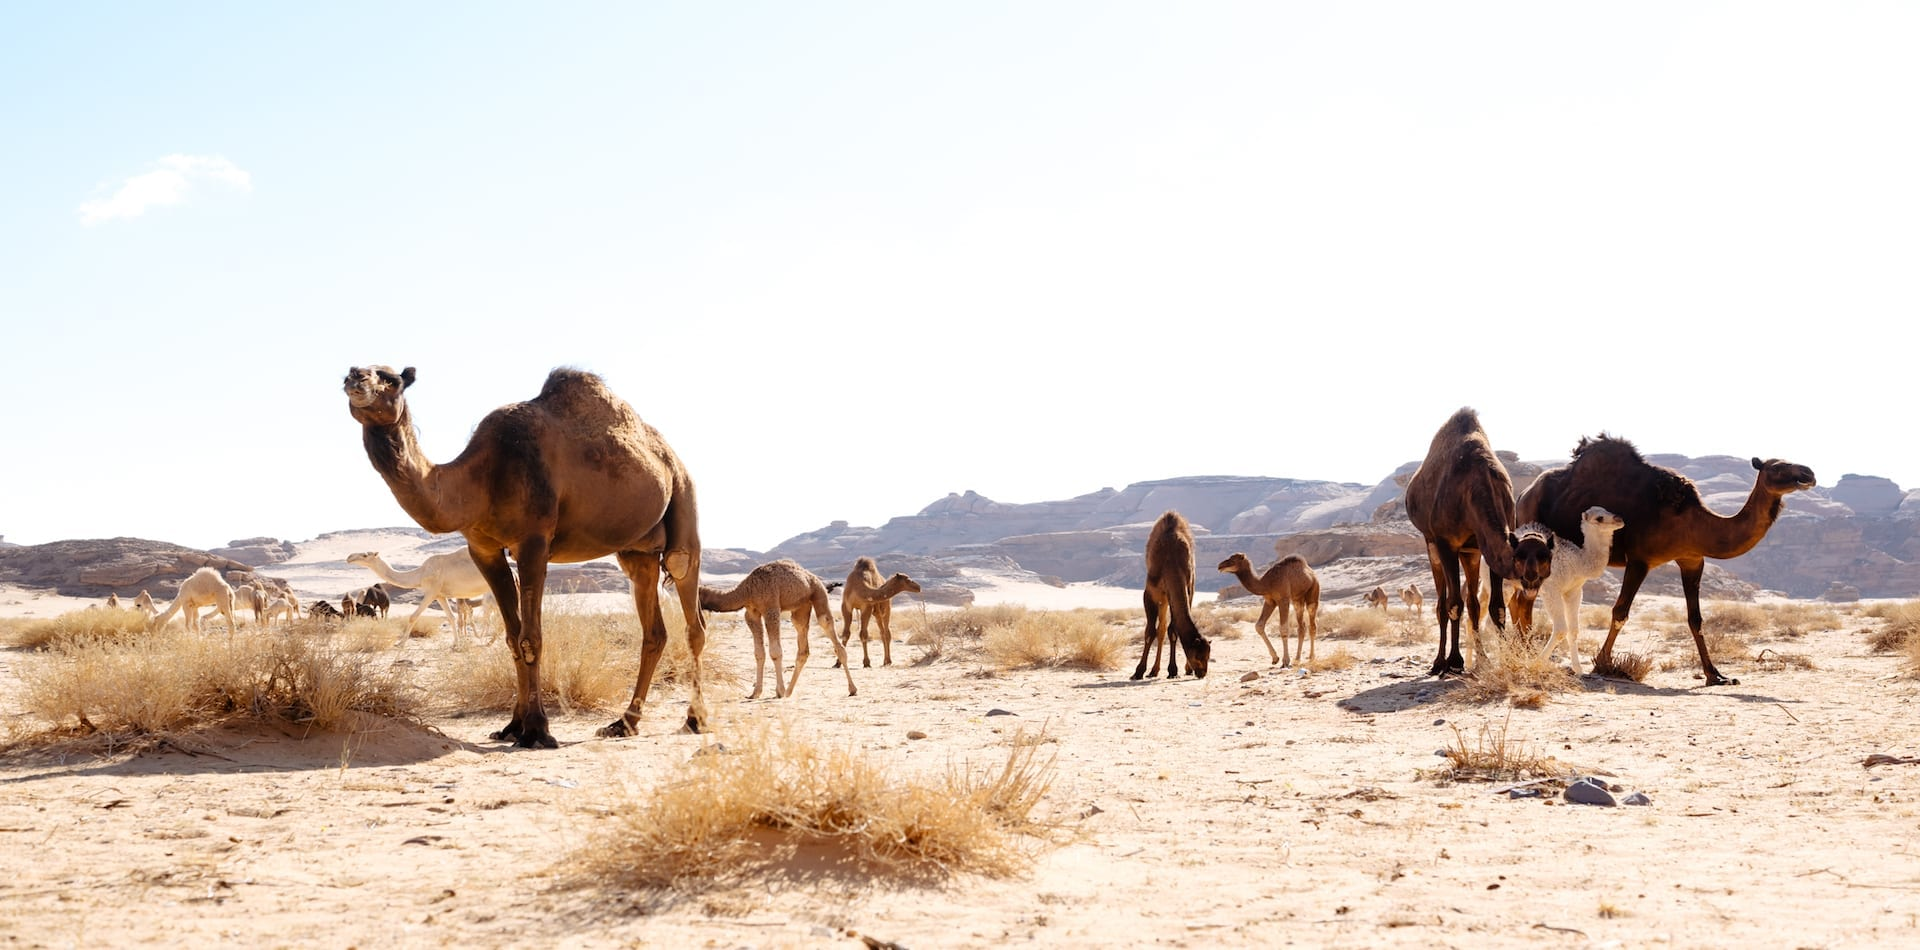 a collection of camels in the desert, AlUla, Saudi